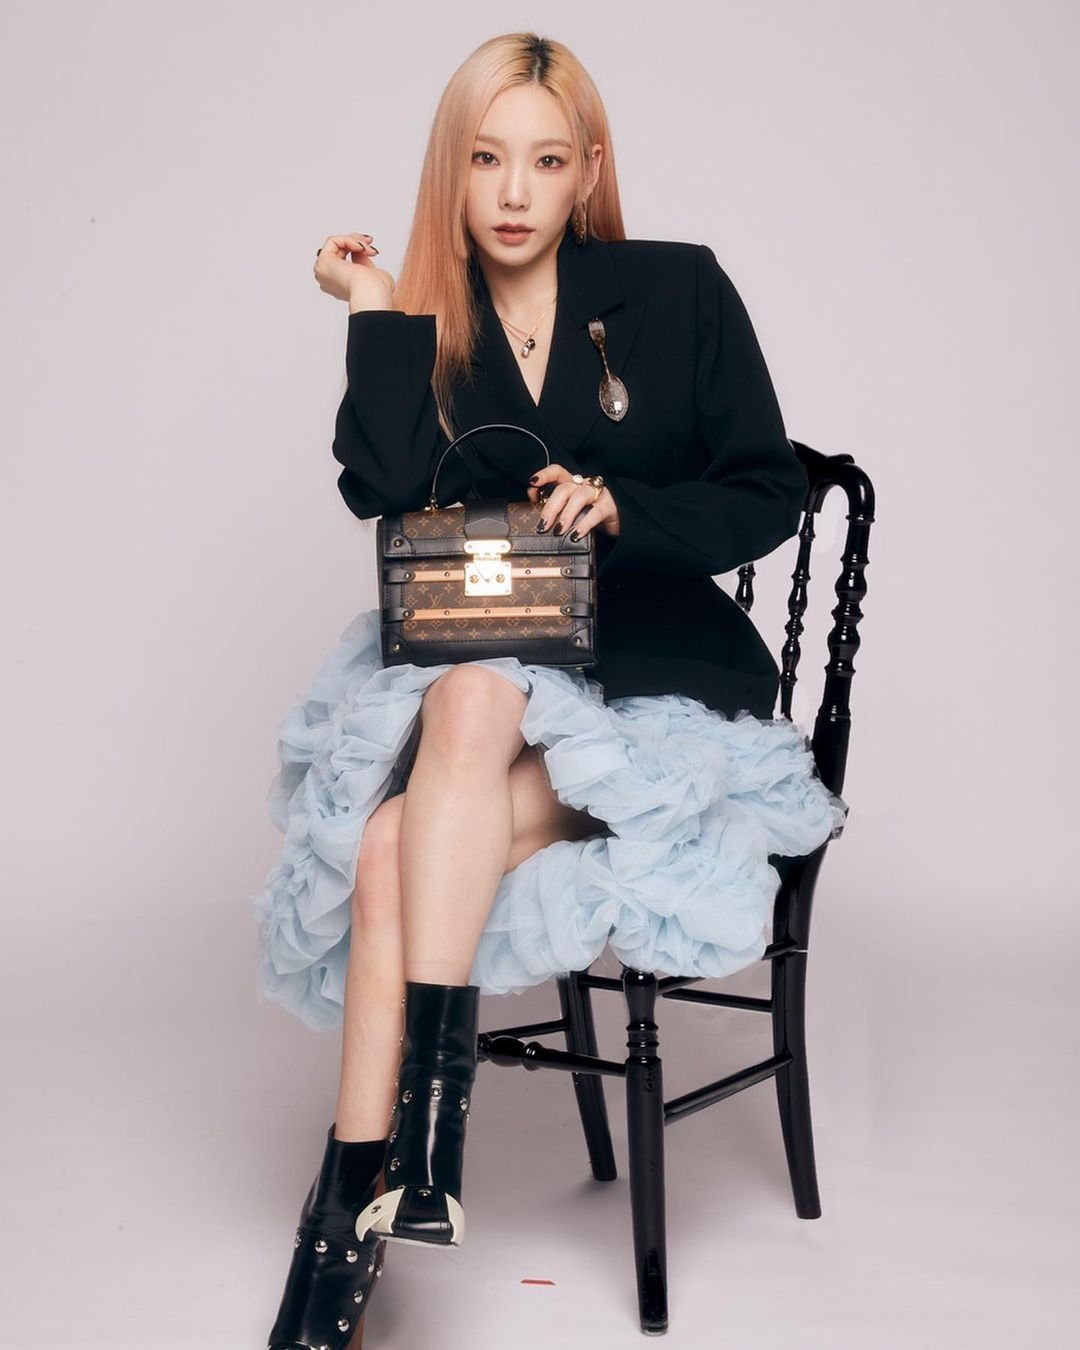 Taeyeon – Louis Vuitton Promotional Pictures